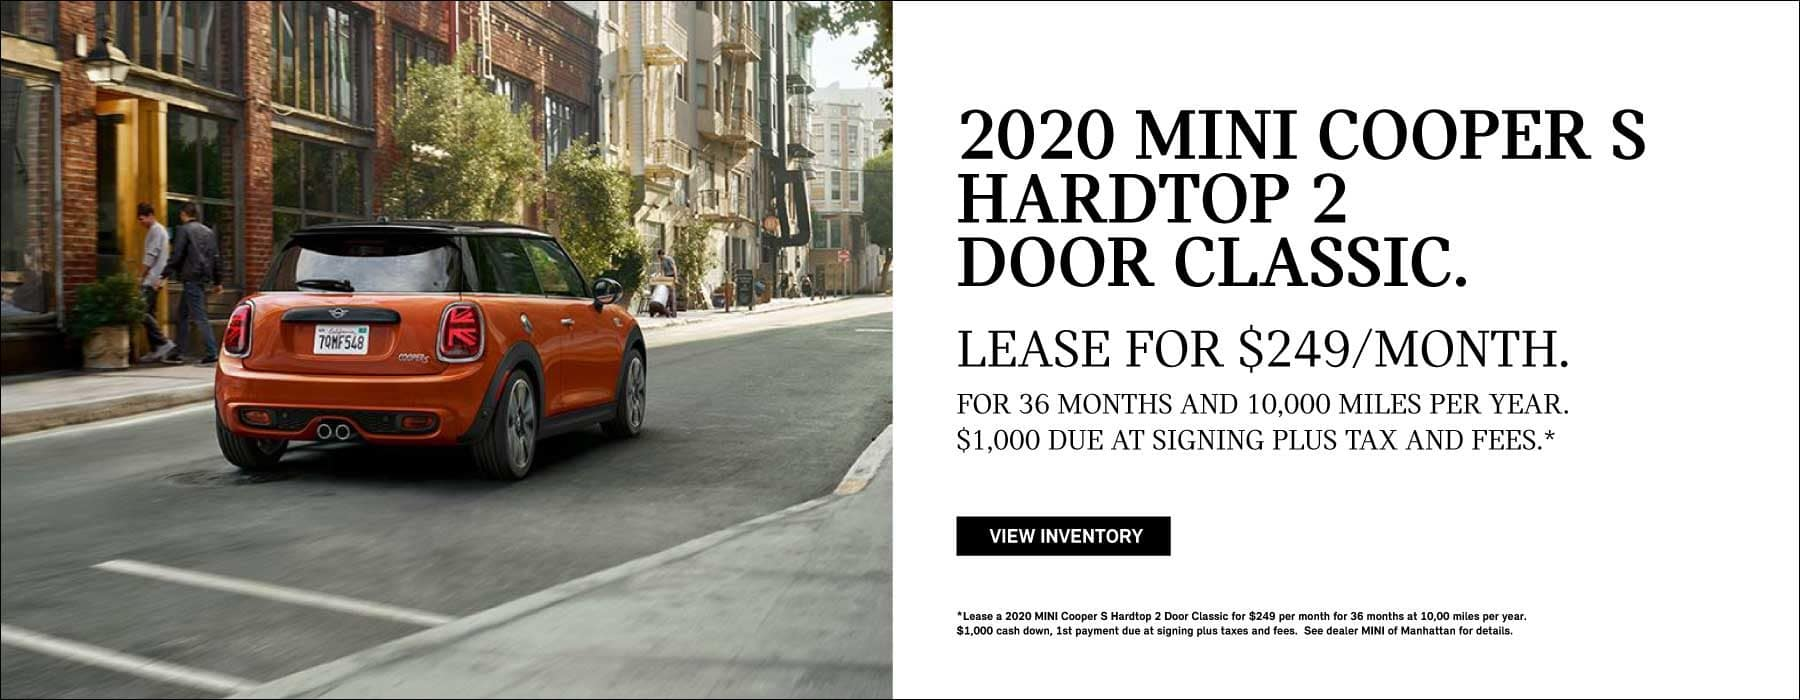 2020 MINI COOPER S HARDTOP 2 DOOR CLASSIC. Lease for $249 month for 36 months and 10,000 miles per year. $1,000 due at signing plus tax and fees. Click to view inventory. *See dealer for complete details.